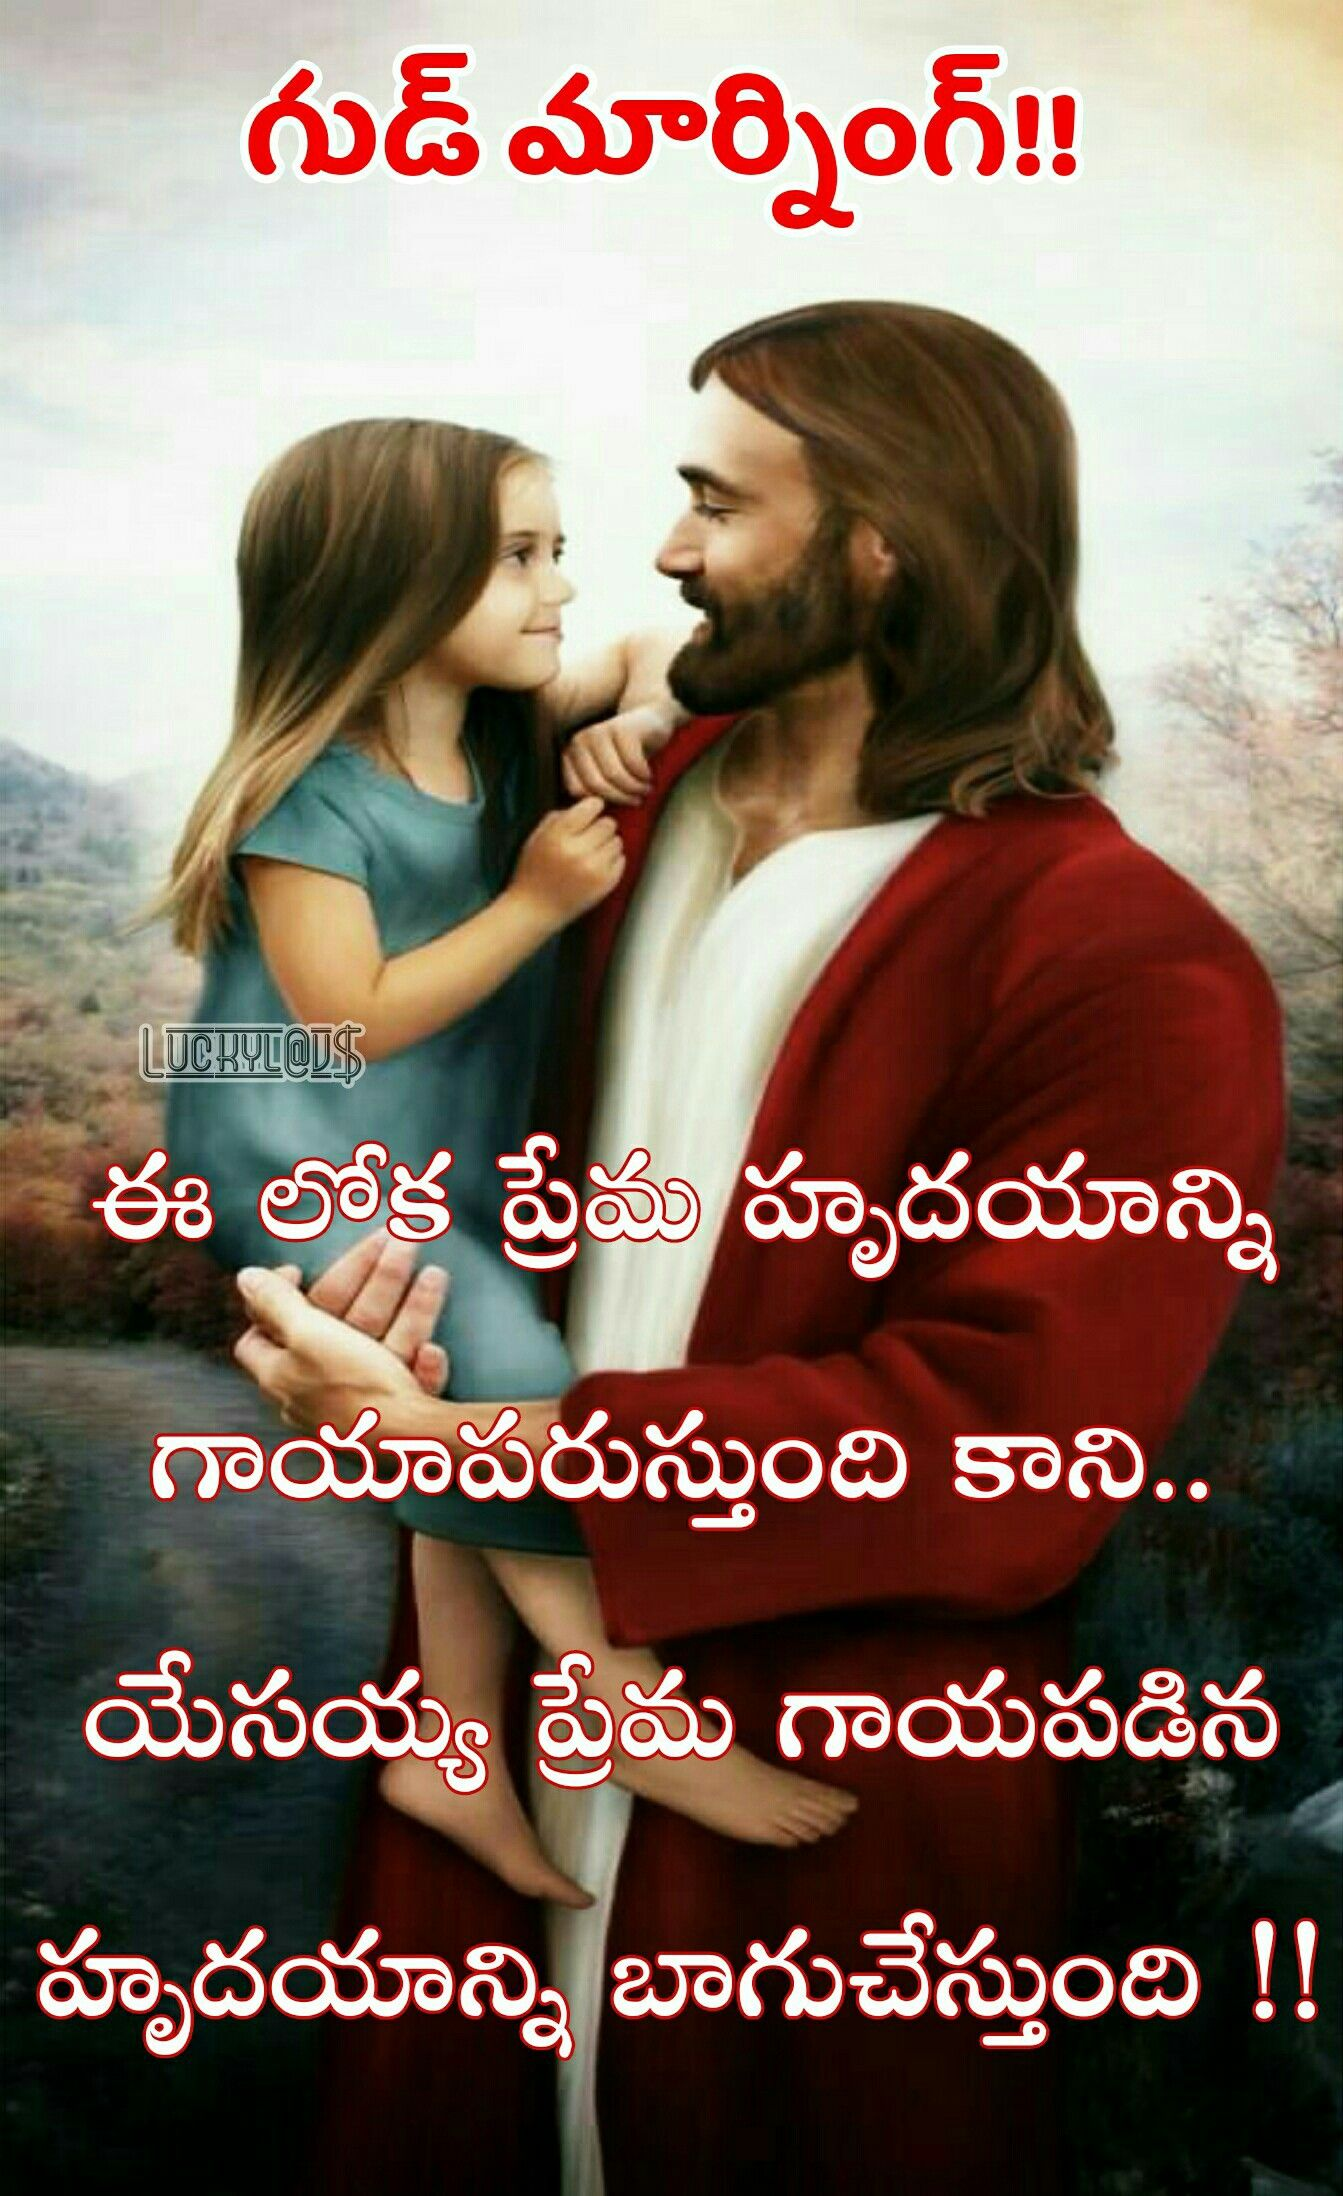 Pin By Kavalla Madhu On My Own Pics Bible Quotes Telugu Bible Quotes Images Jesus Christ Quotes